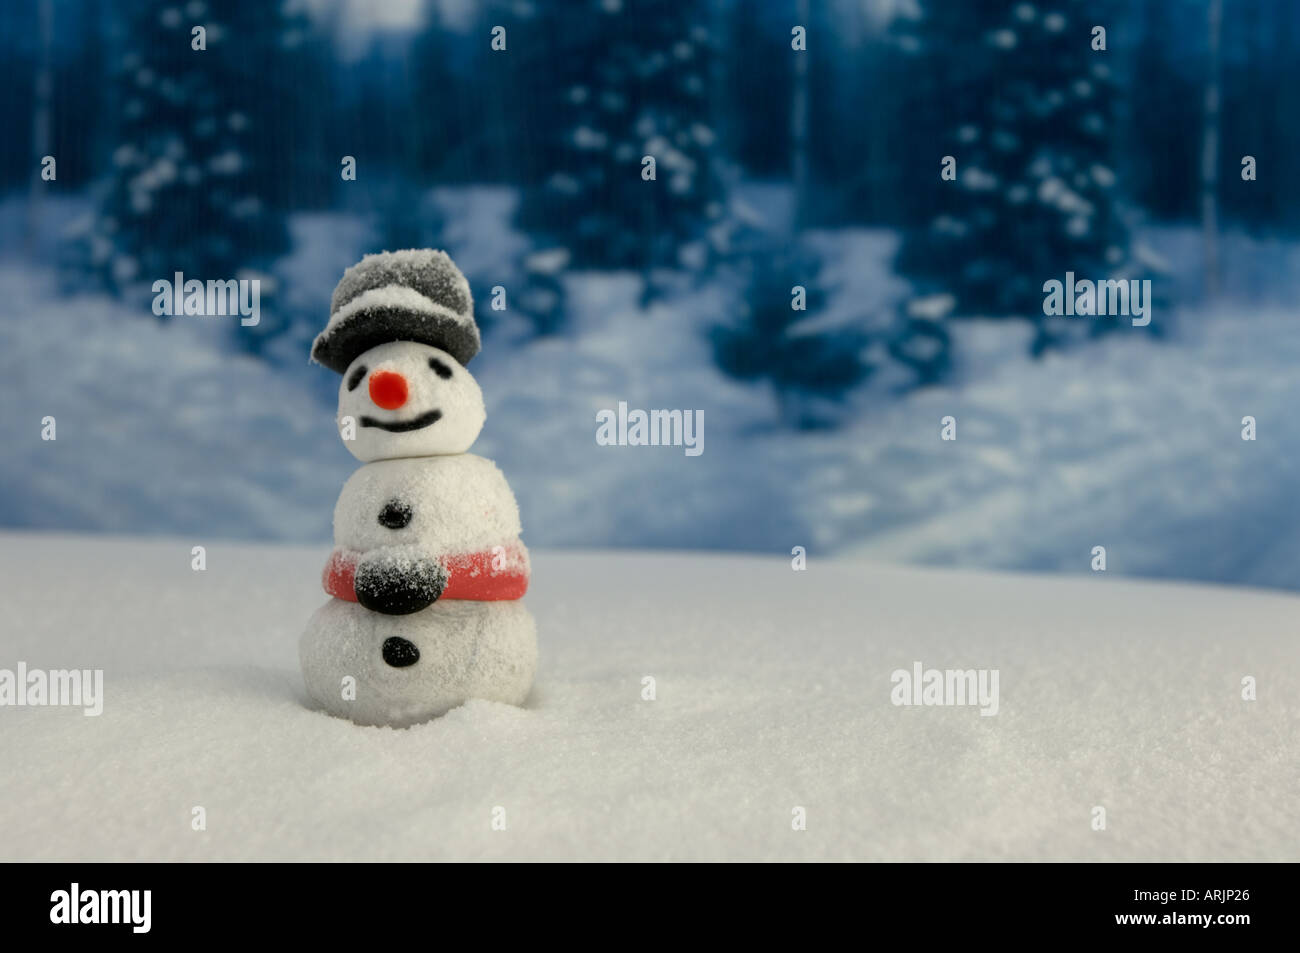 Model of a snowman with convincing fake snow - Stock Image